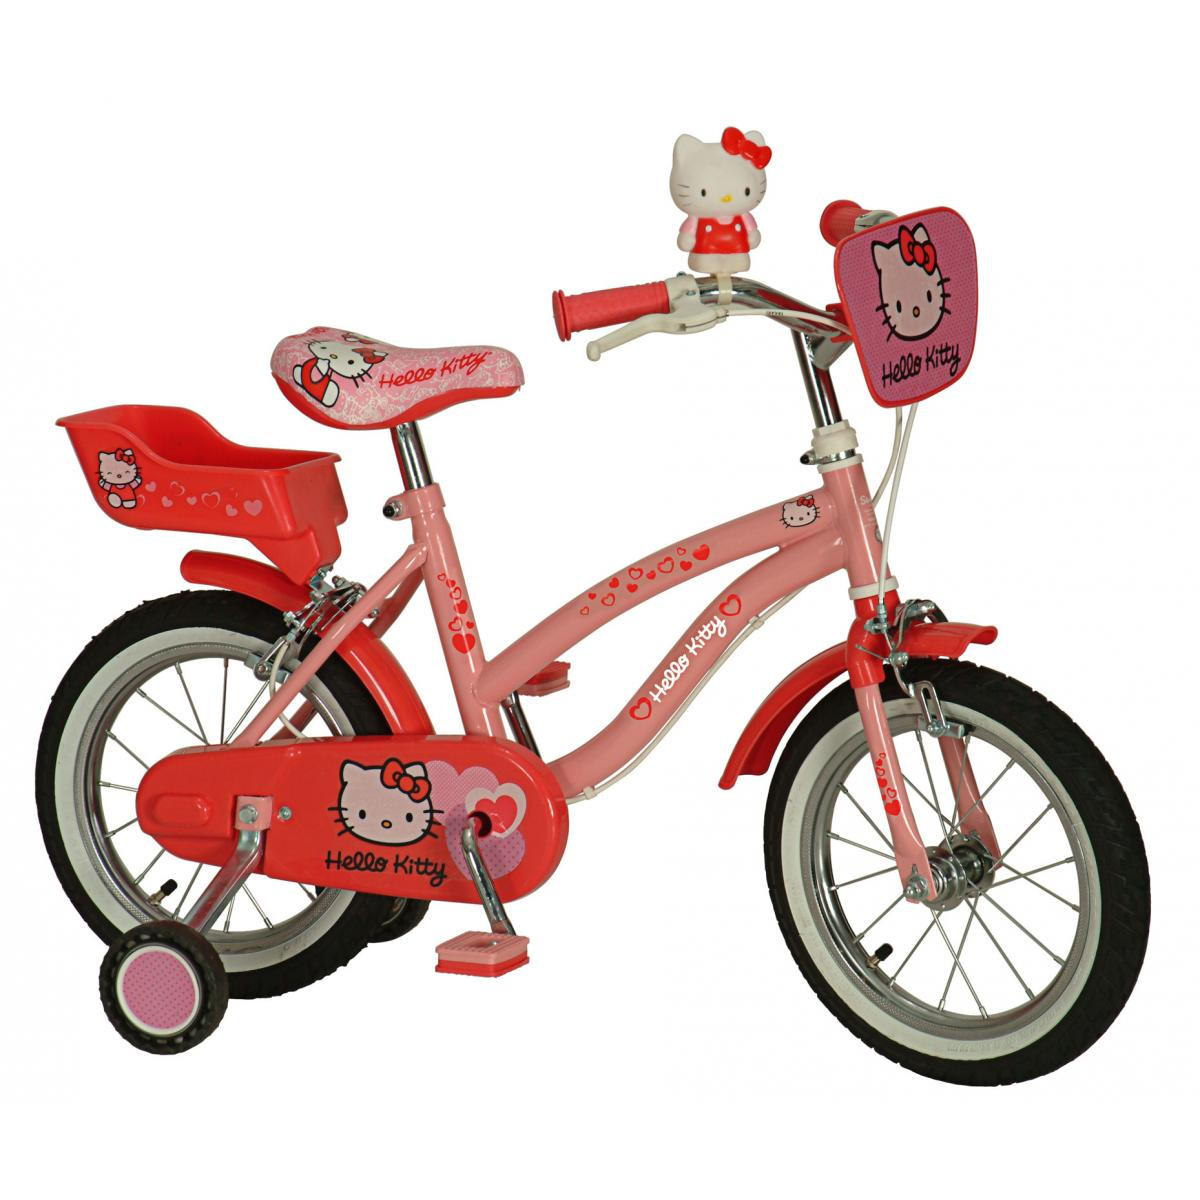 hello kitty fahrrad 14 zoll von yakari kinderfahrrad f r. Black Bedroom Furniture Sets. Home Design Ideas